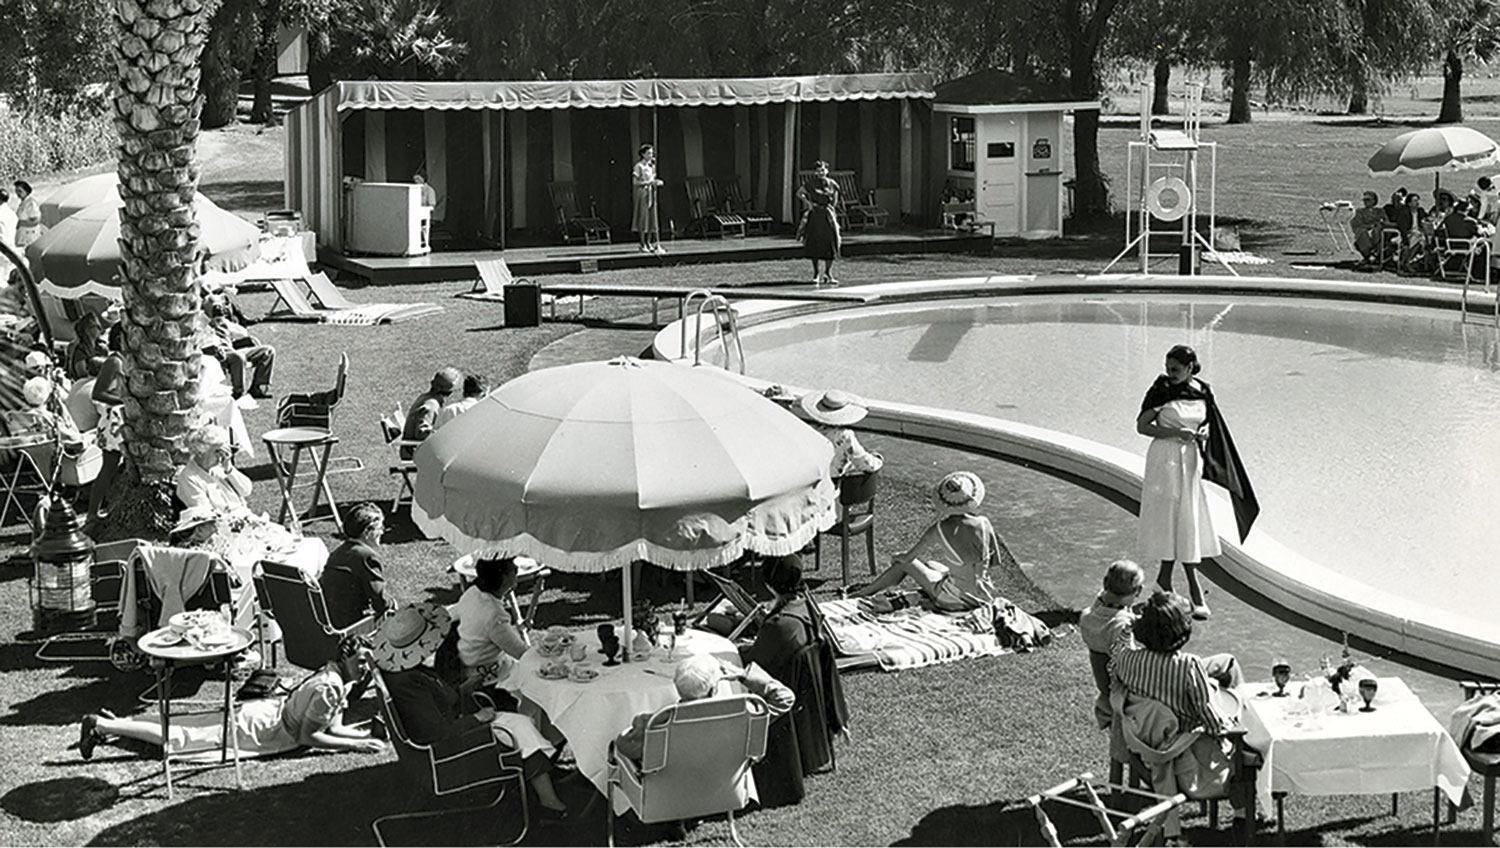 fashion show at the pool circa 1930s